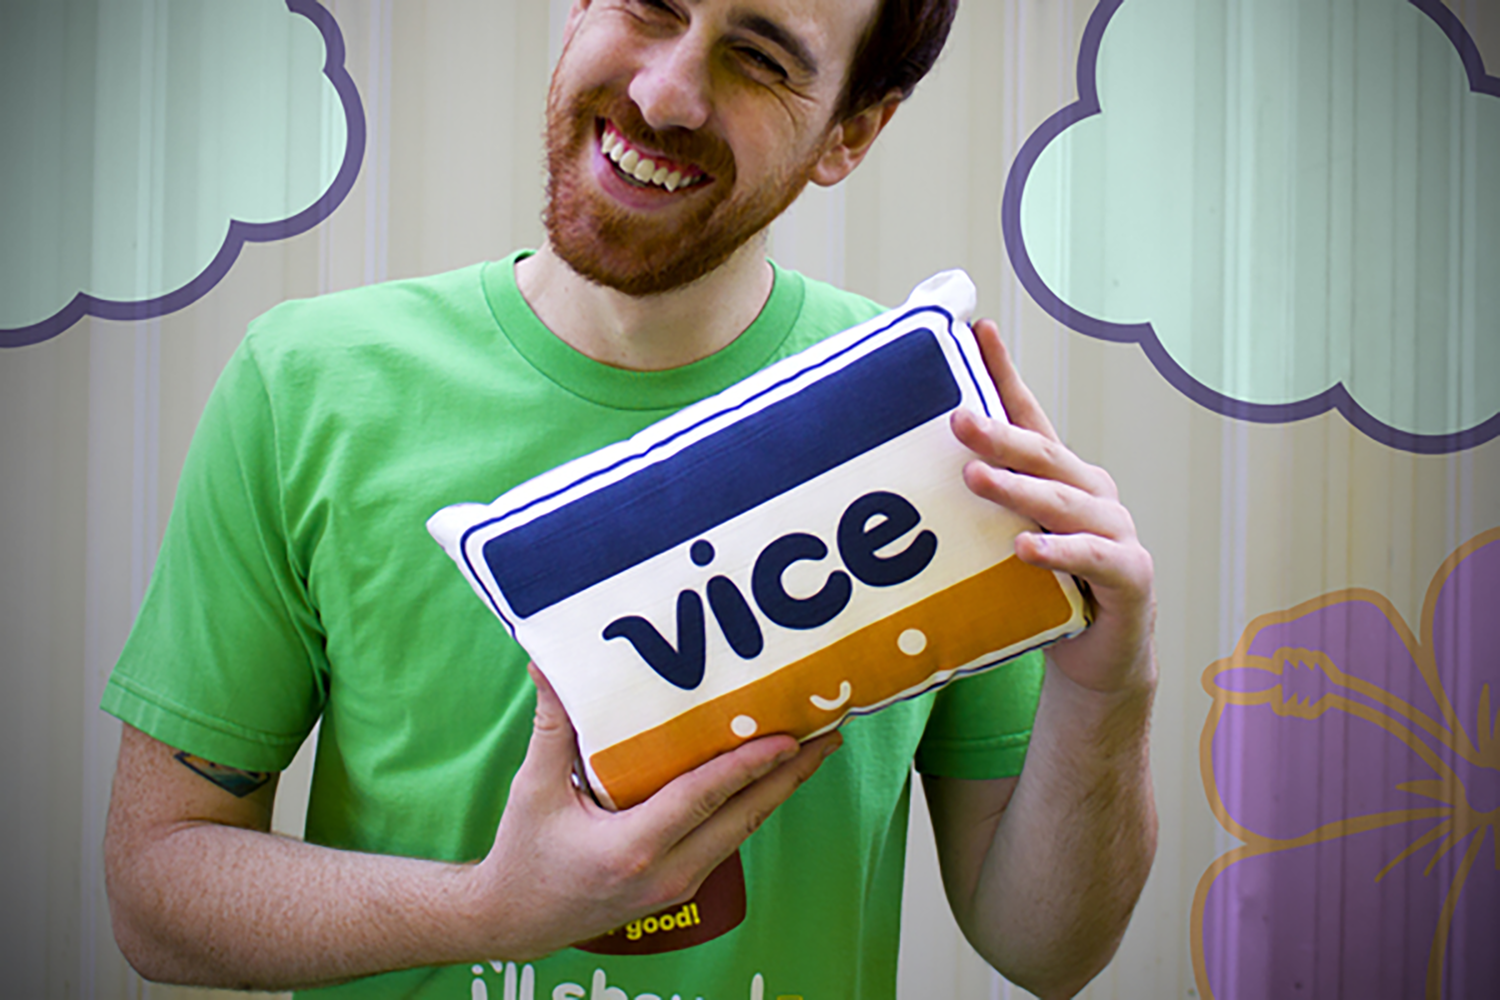 MMM-SGD_Vice_Pillow-1.png